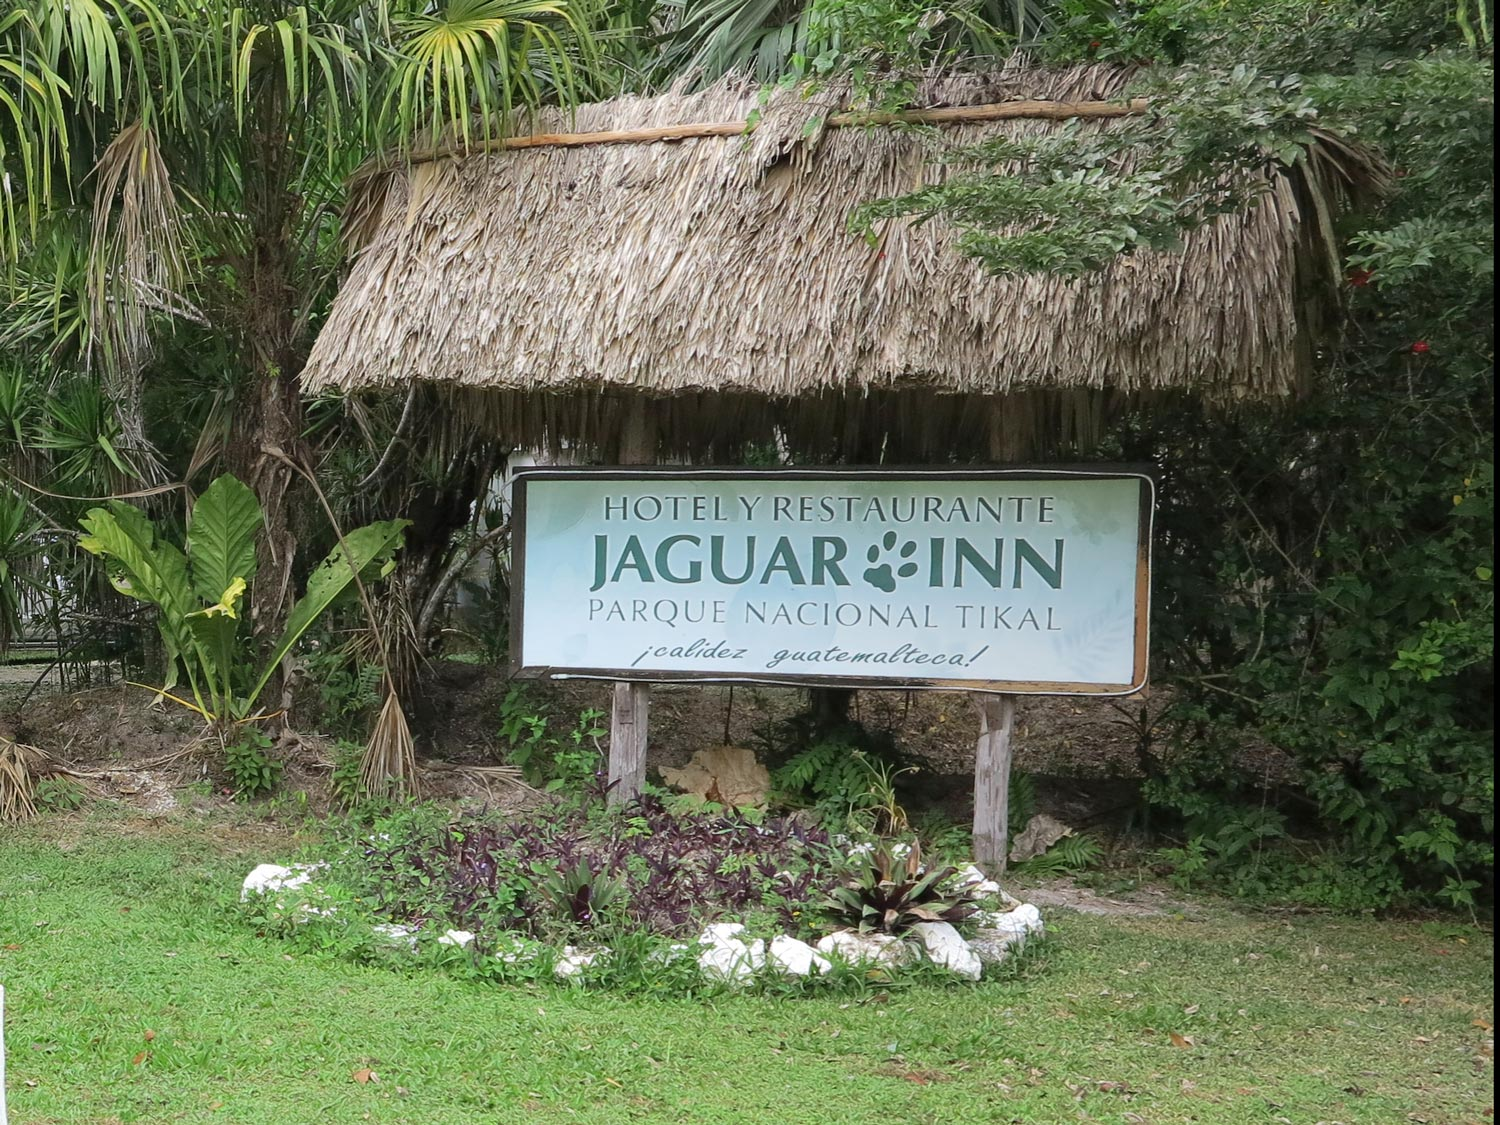 Tikal National Park Accommodations - Jaguar Inn Hotel